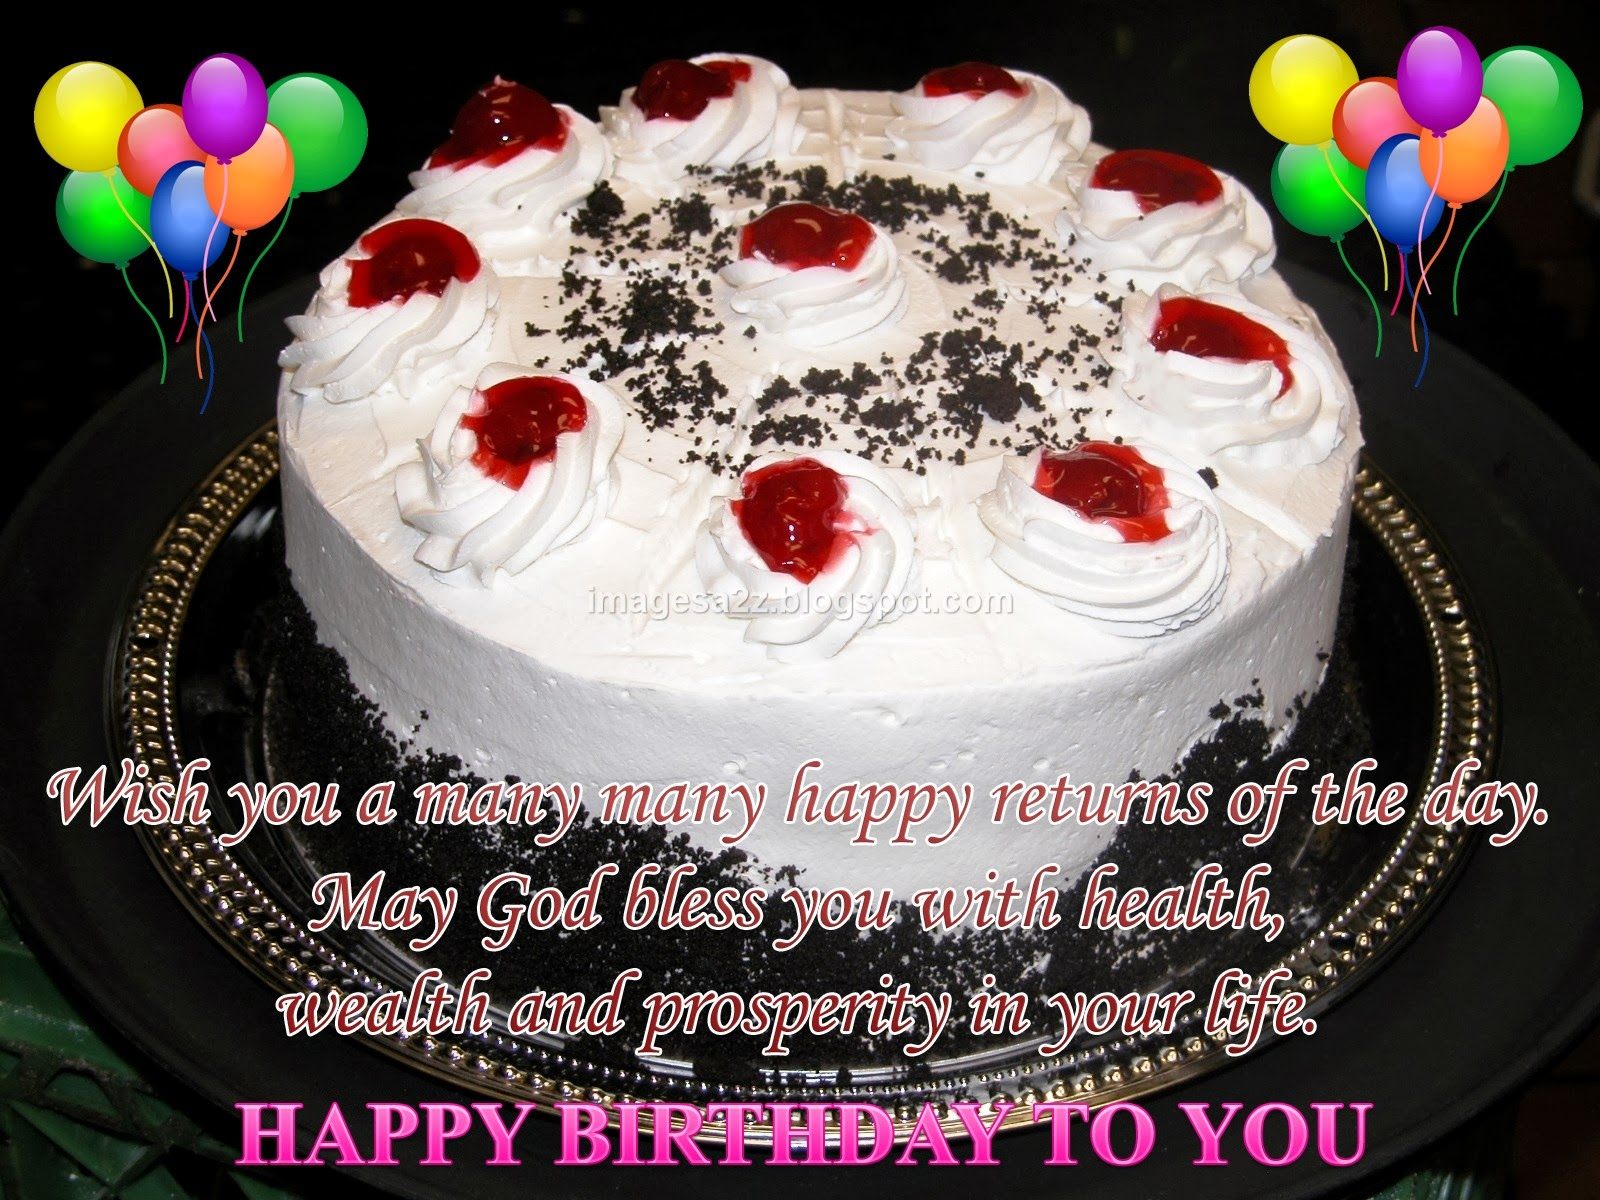 happy birthday cake picture messages ; 46209897d6b3f413c93b129f1a45174e